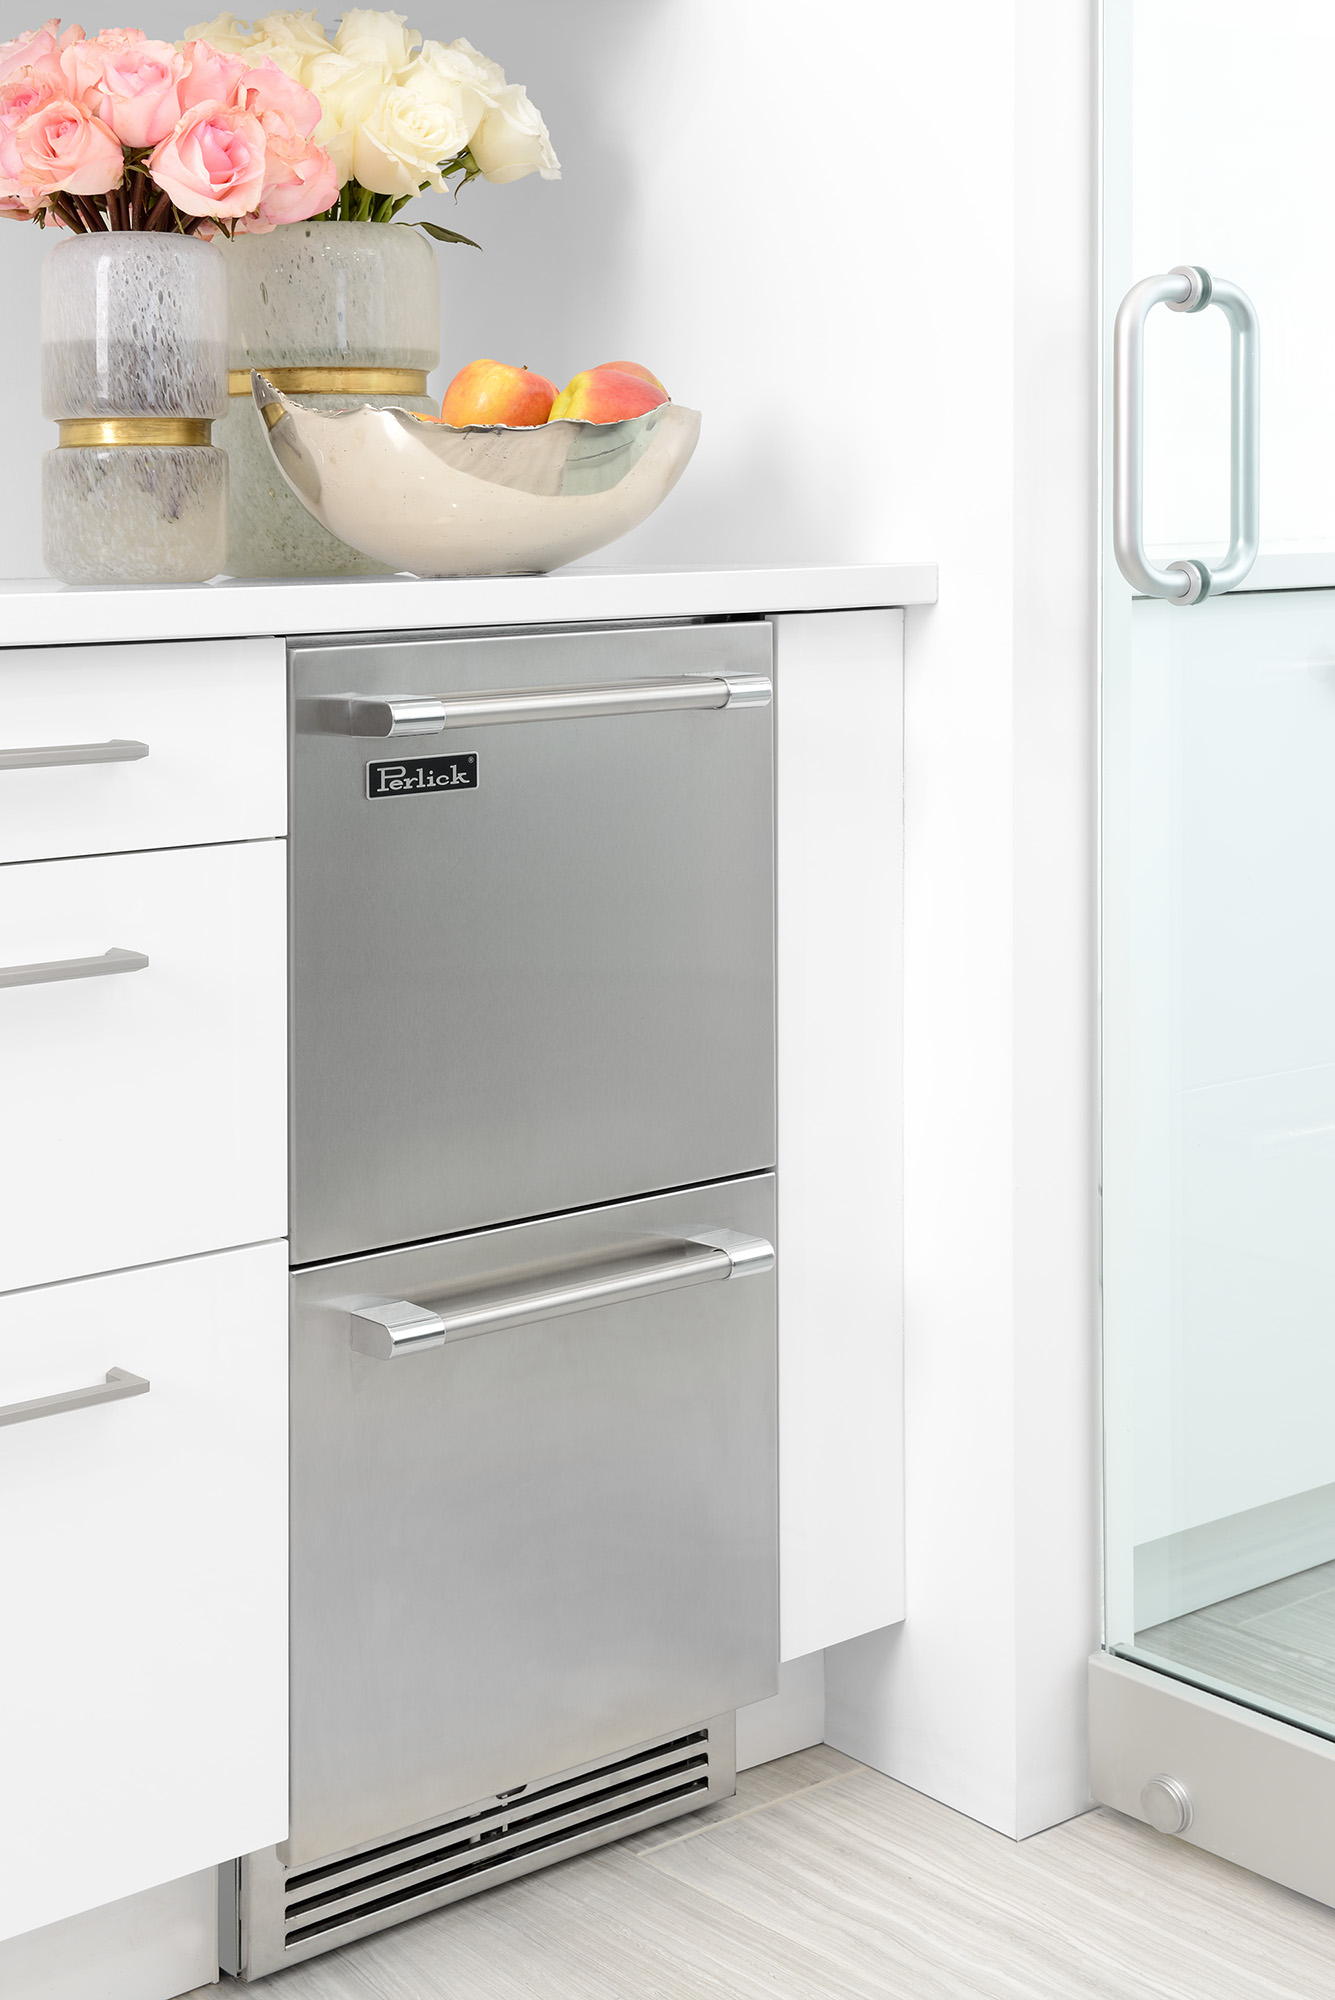 docere-perlick-fridge-drawers